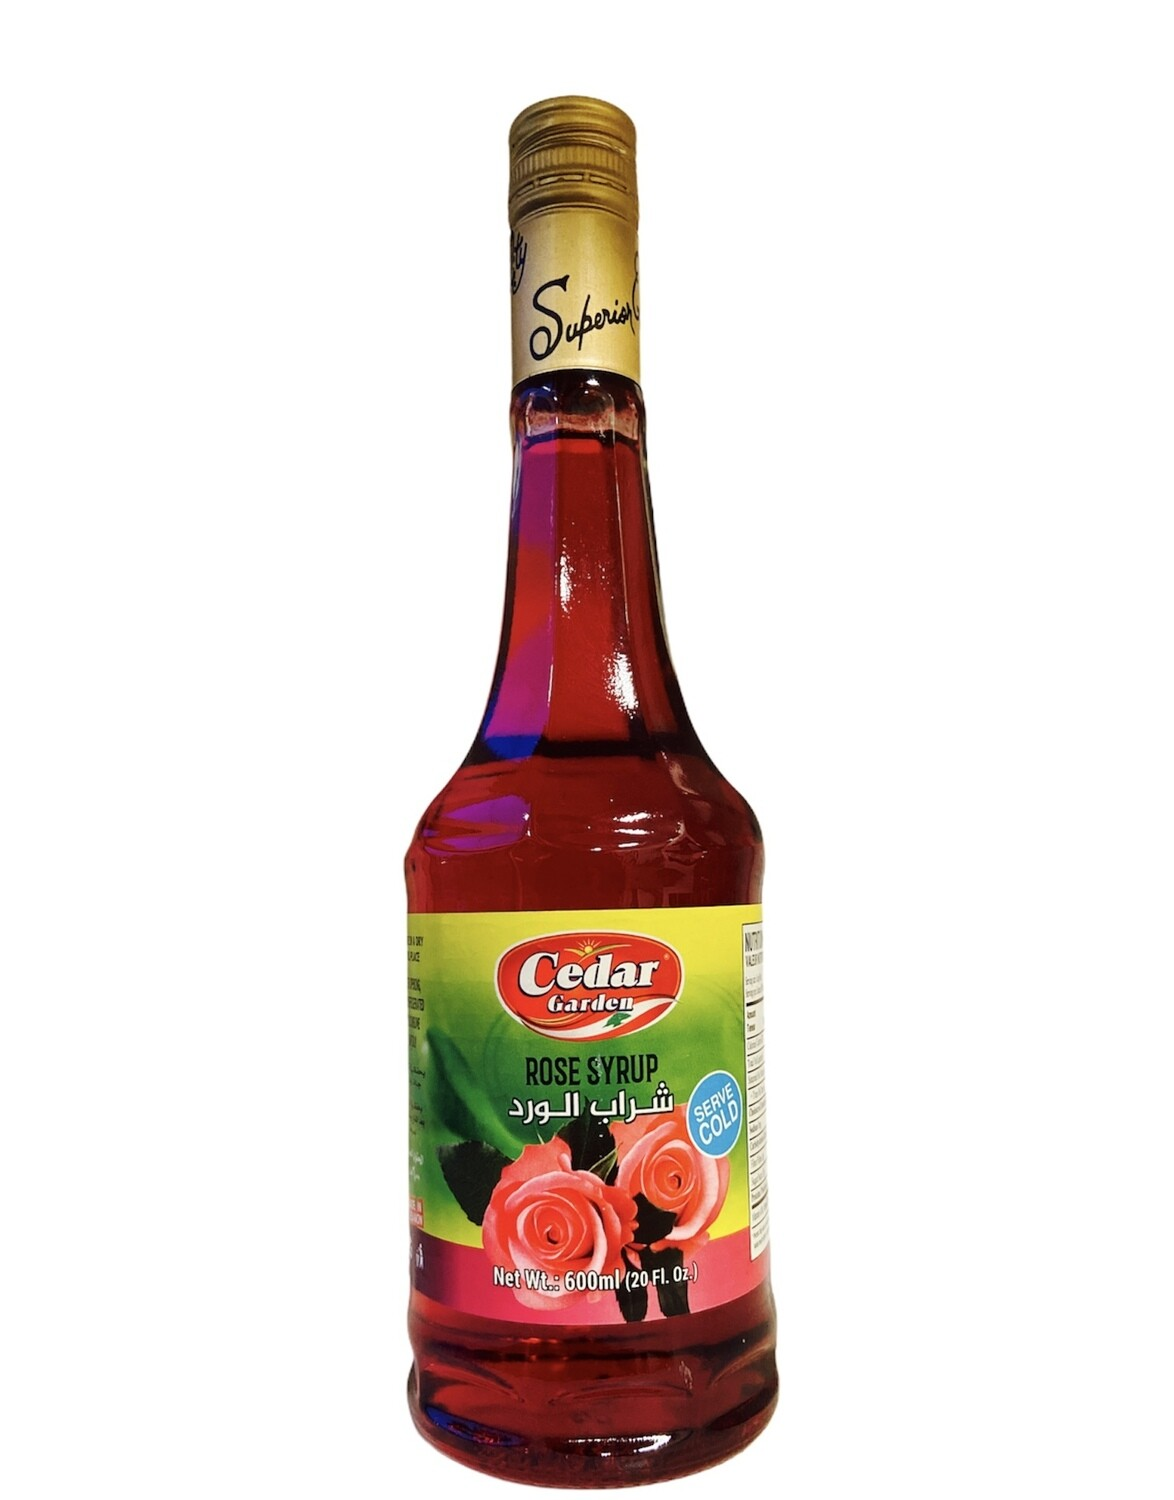 Cedar Garden Rose Syrup 12x600ml